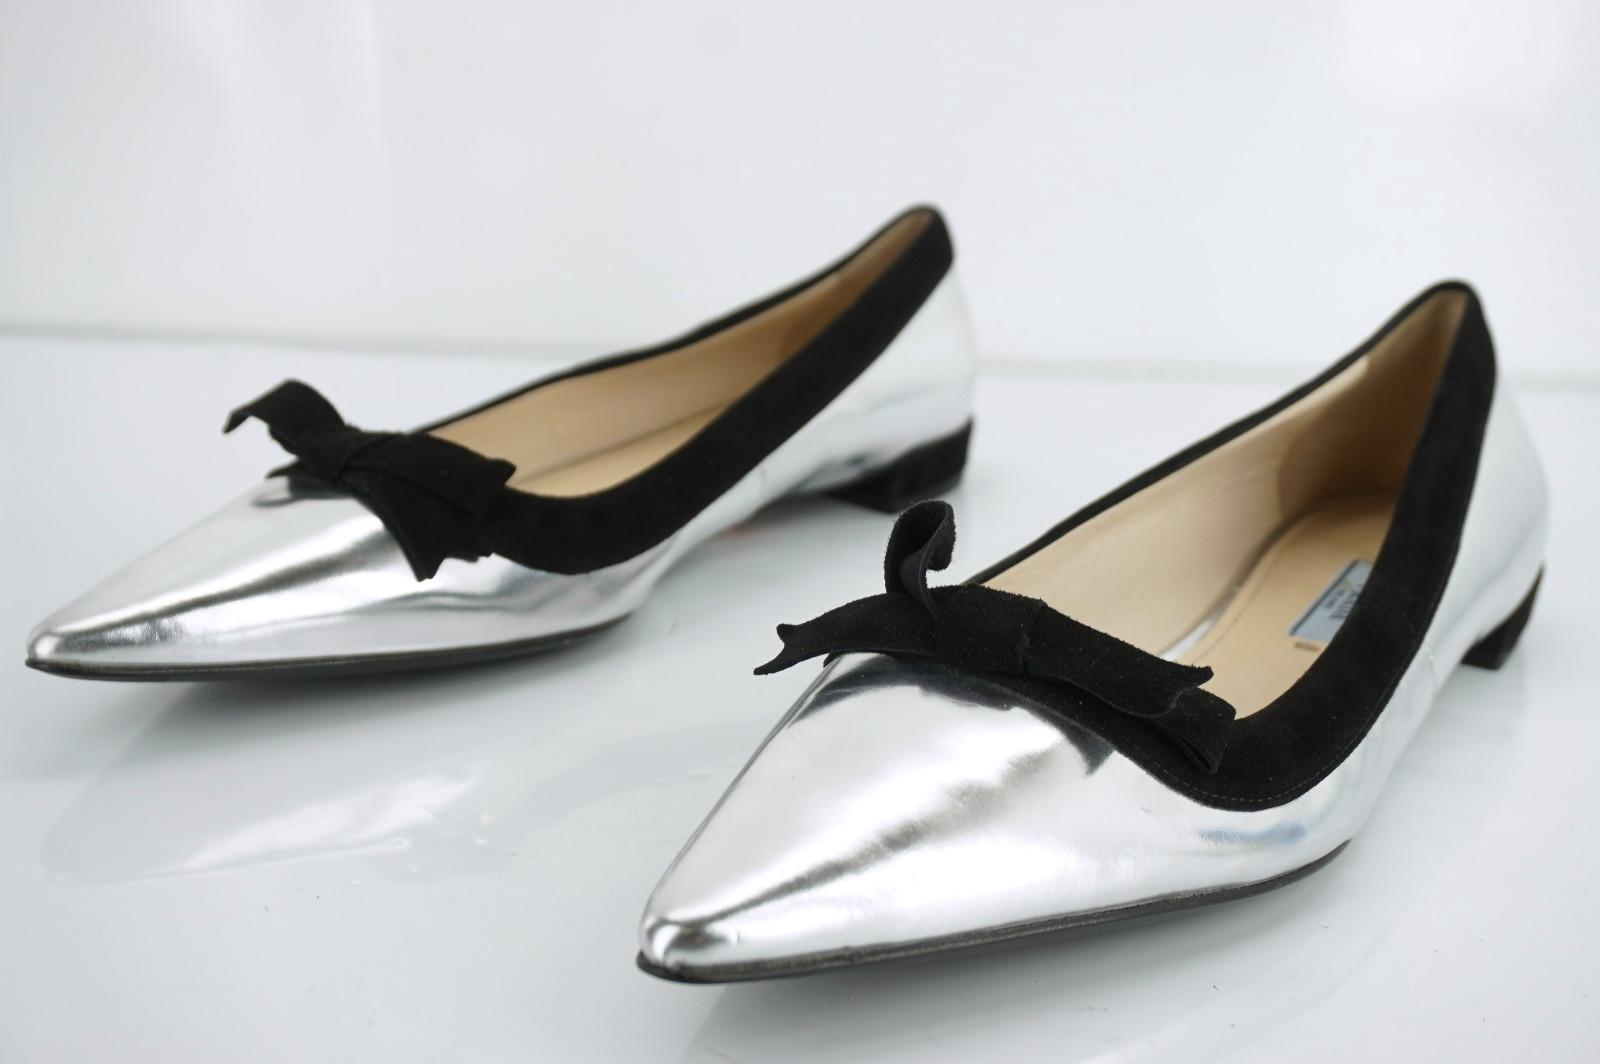 e1cffae9cdf ... Prada Silver Shiny Metallic Leather Pointed Pointed Pointed Bow Toe  Ballet Flats Size EU 39 ...